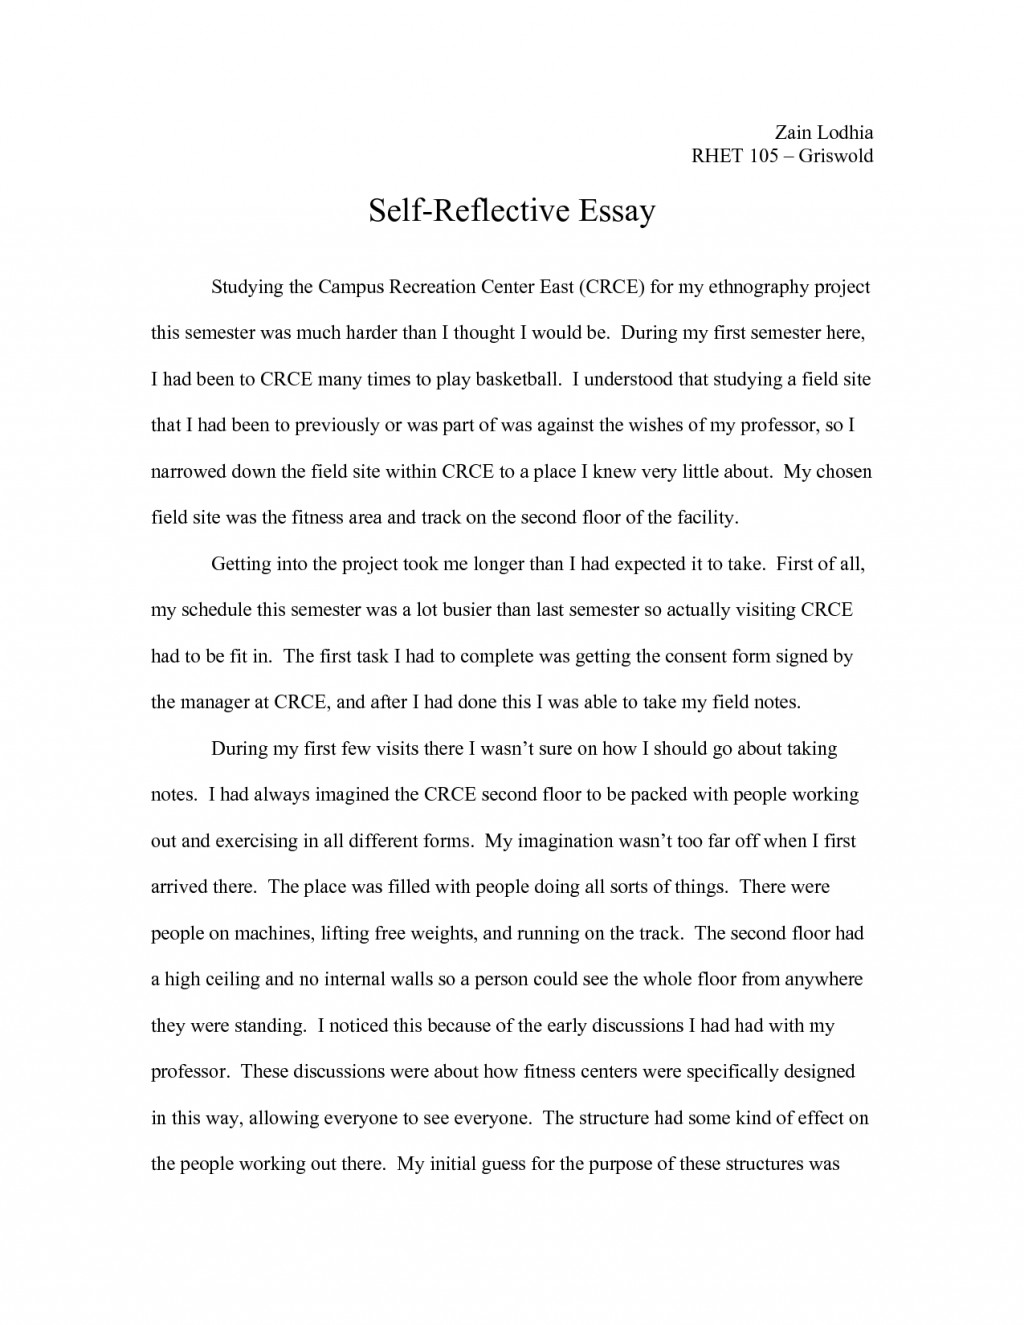 003 Qal0pwnf46 Reflective Essays Beautiful Essay Examples English Pdf For Middle School On Writing Class Large